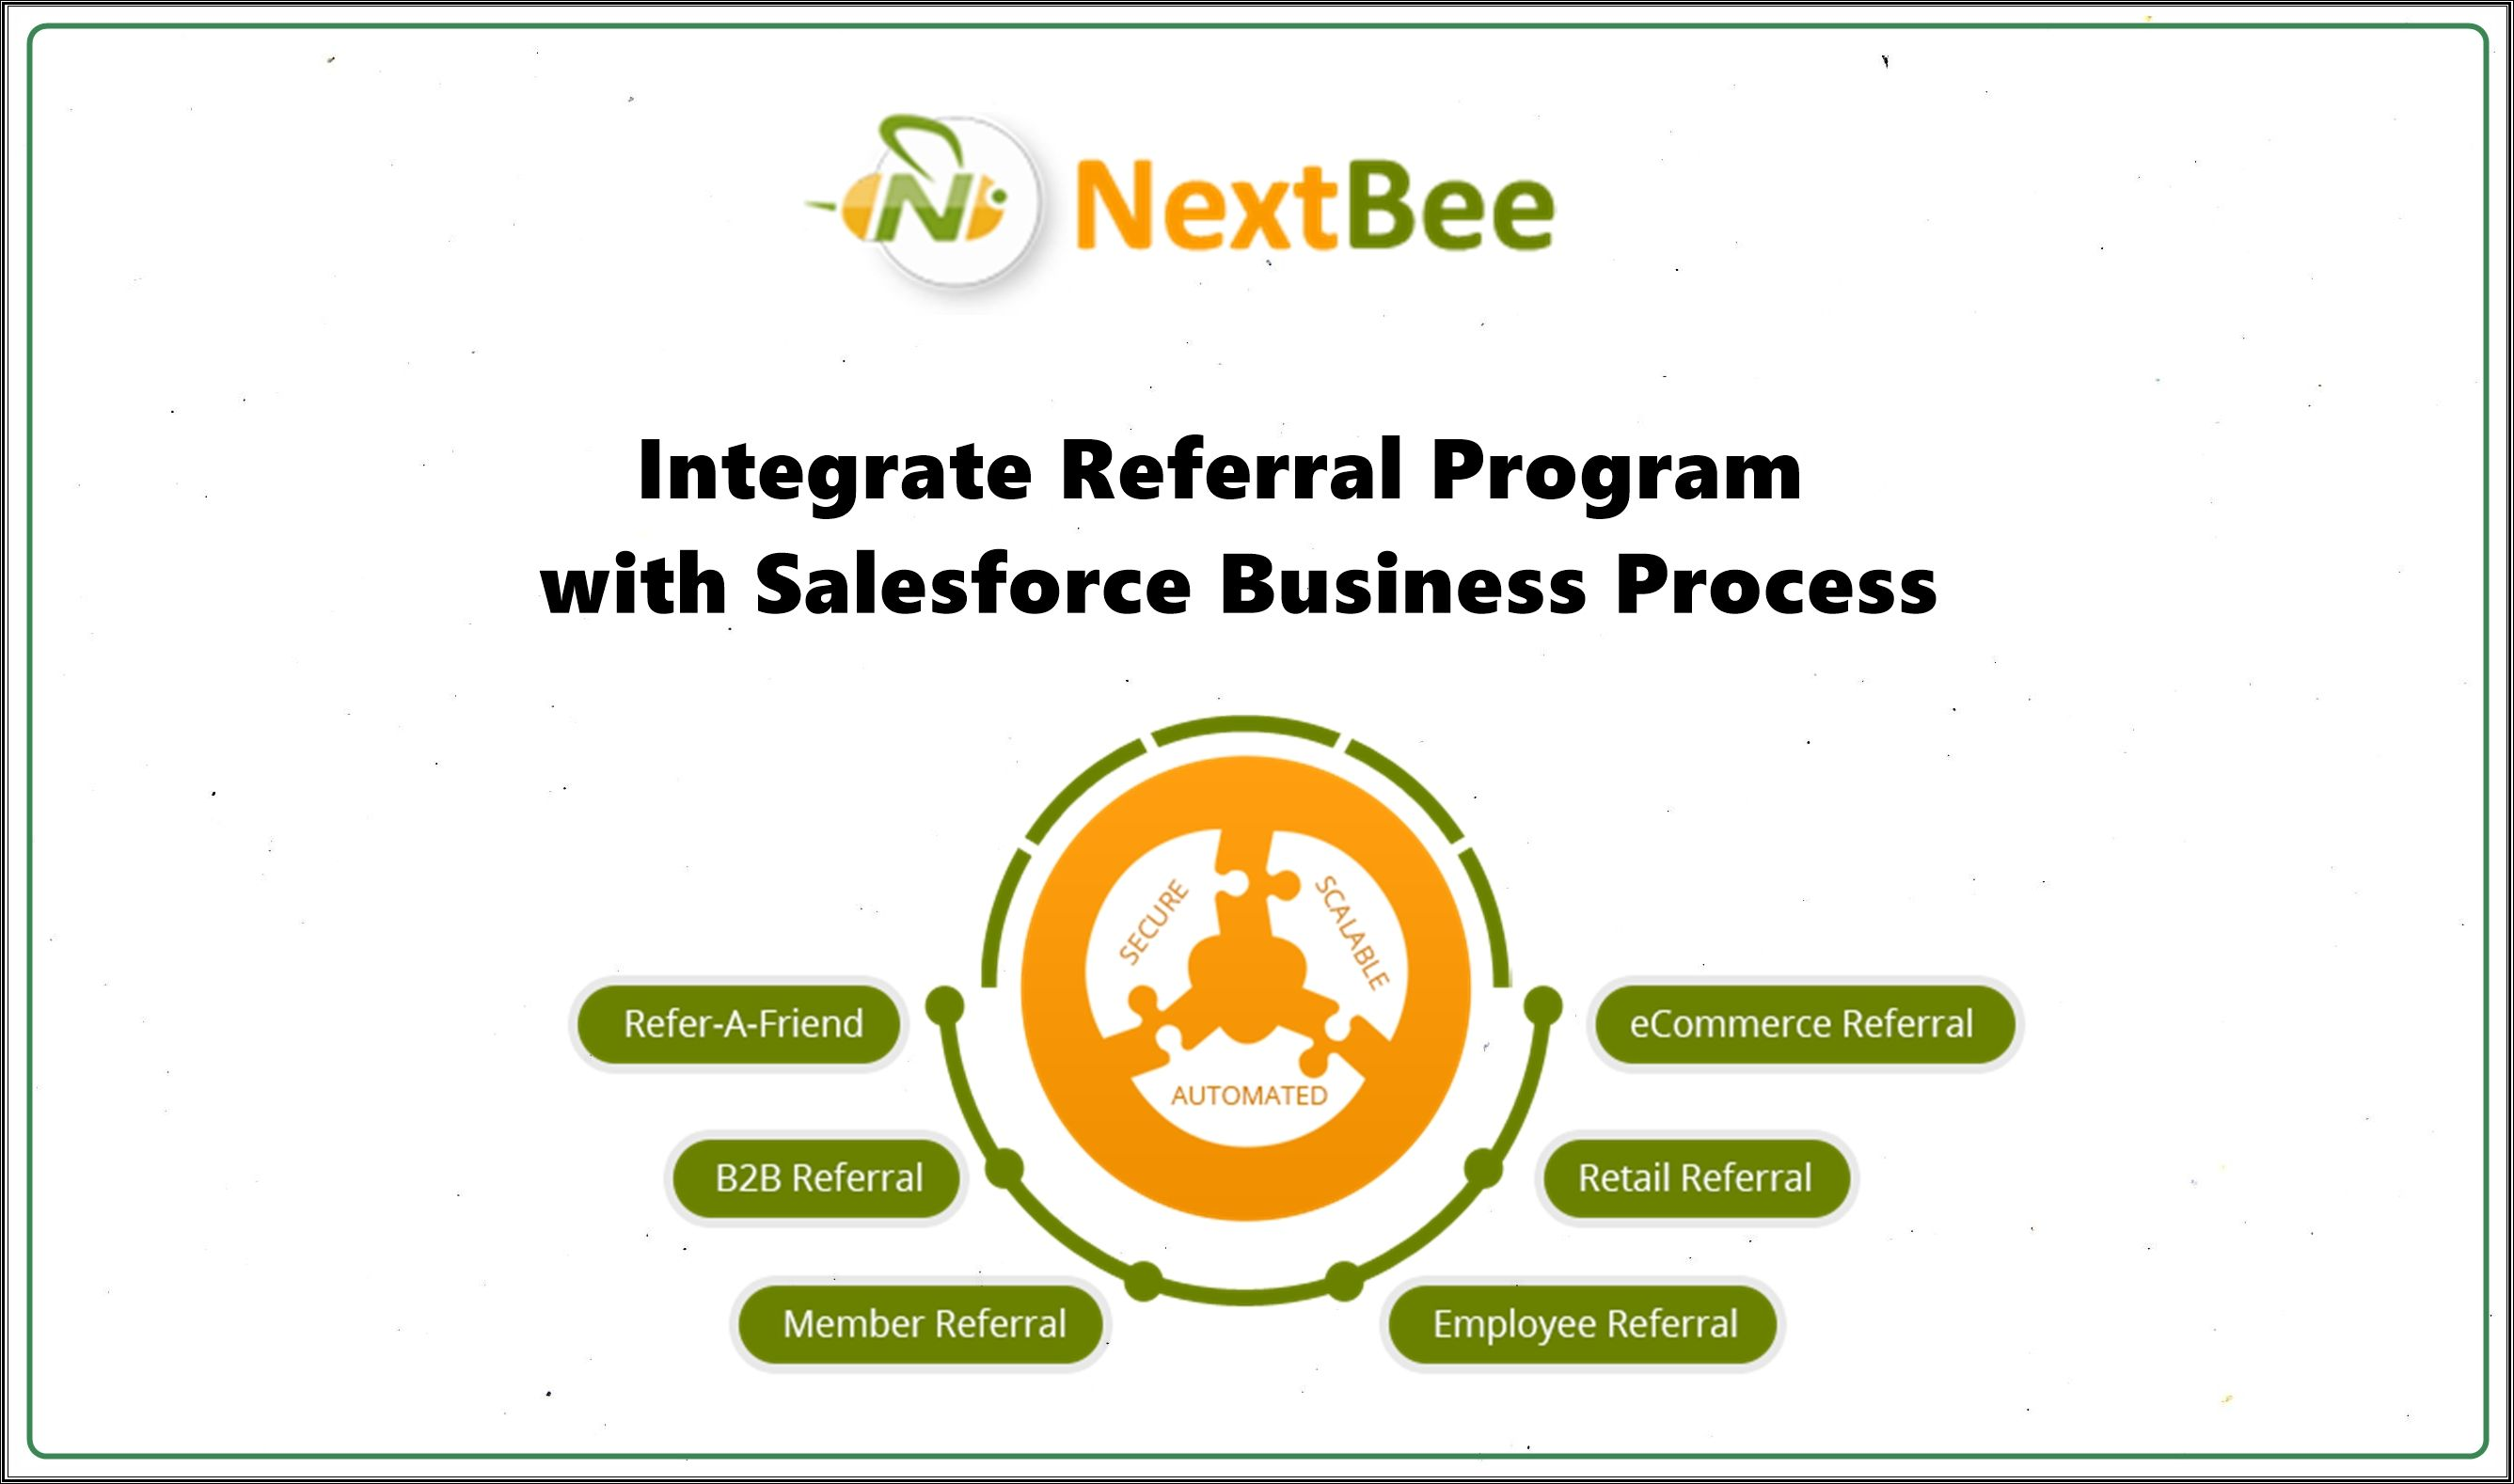 integrate referral program with salesforce business application